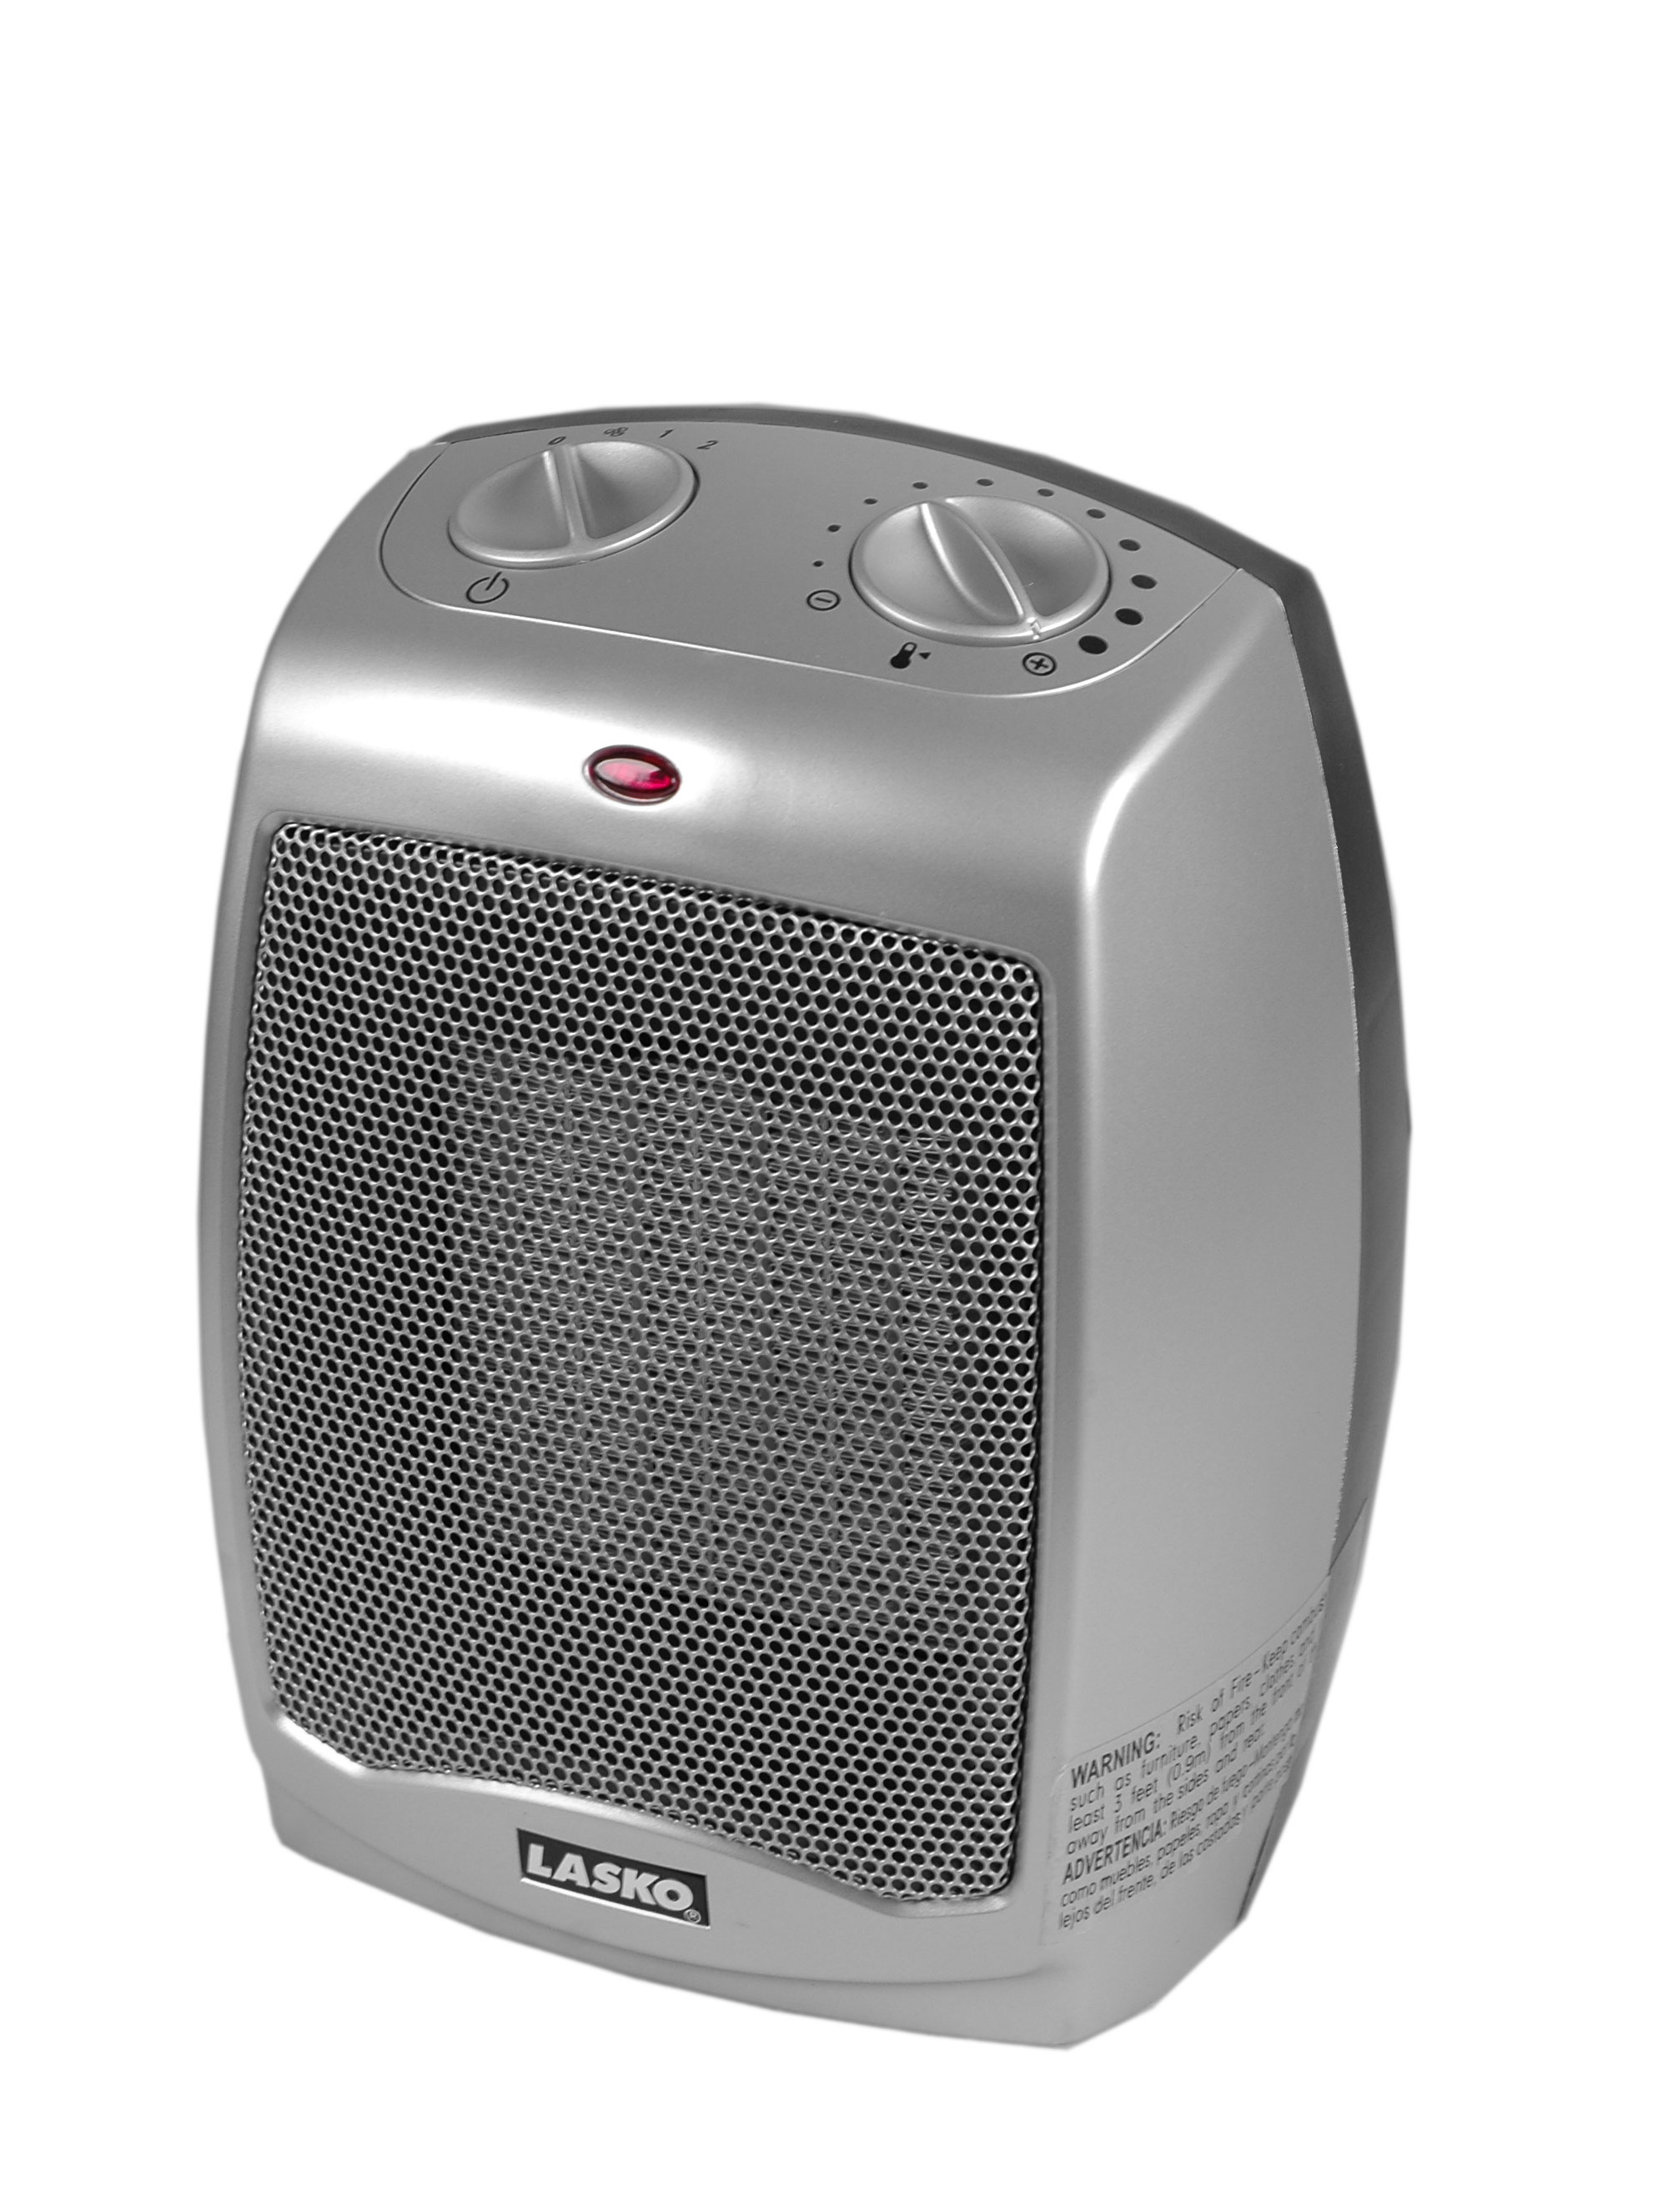 Best Lasko Electric Ceramic 1500W Heater Home Office Heating This Month